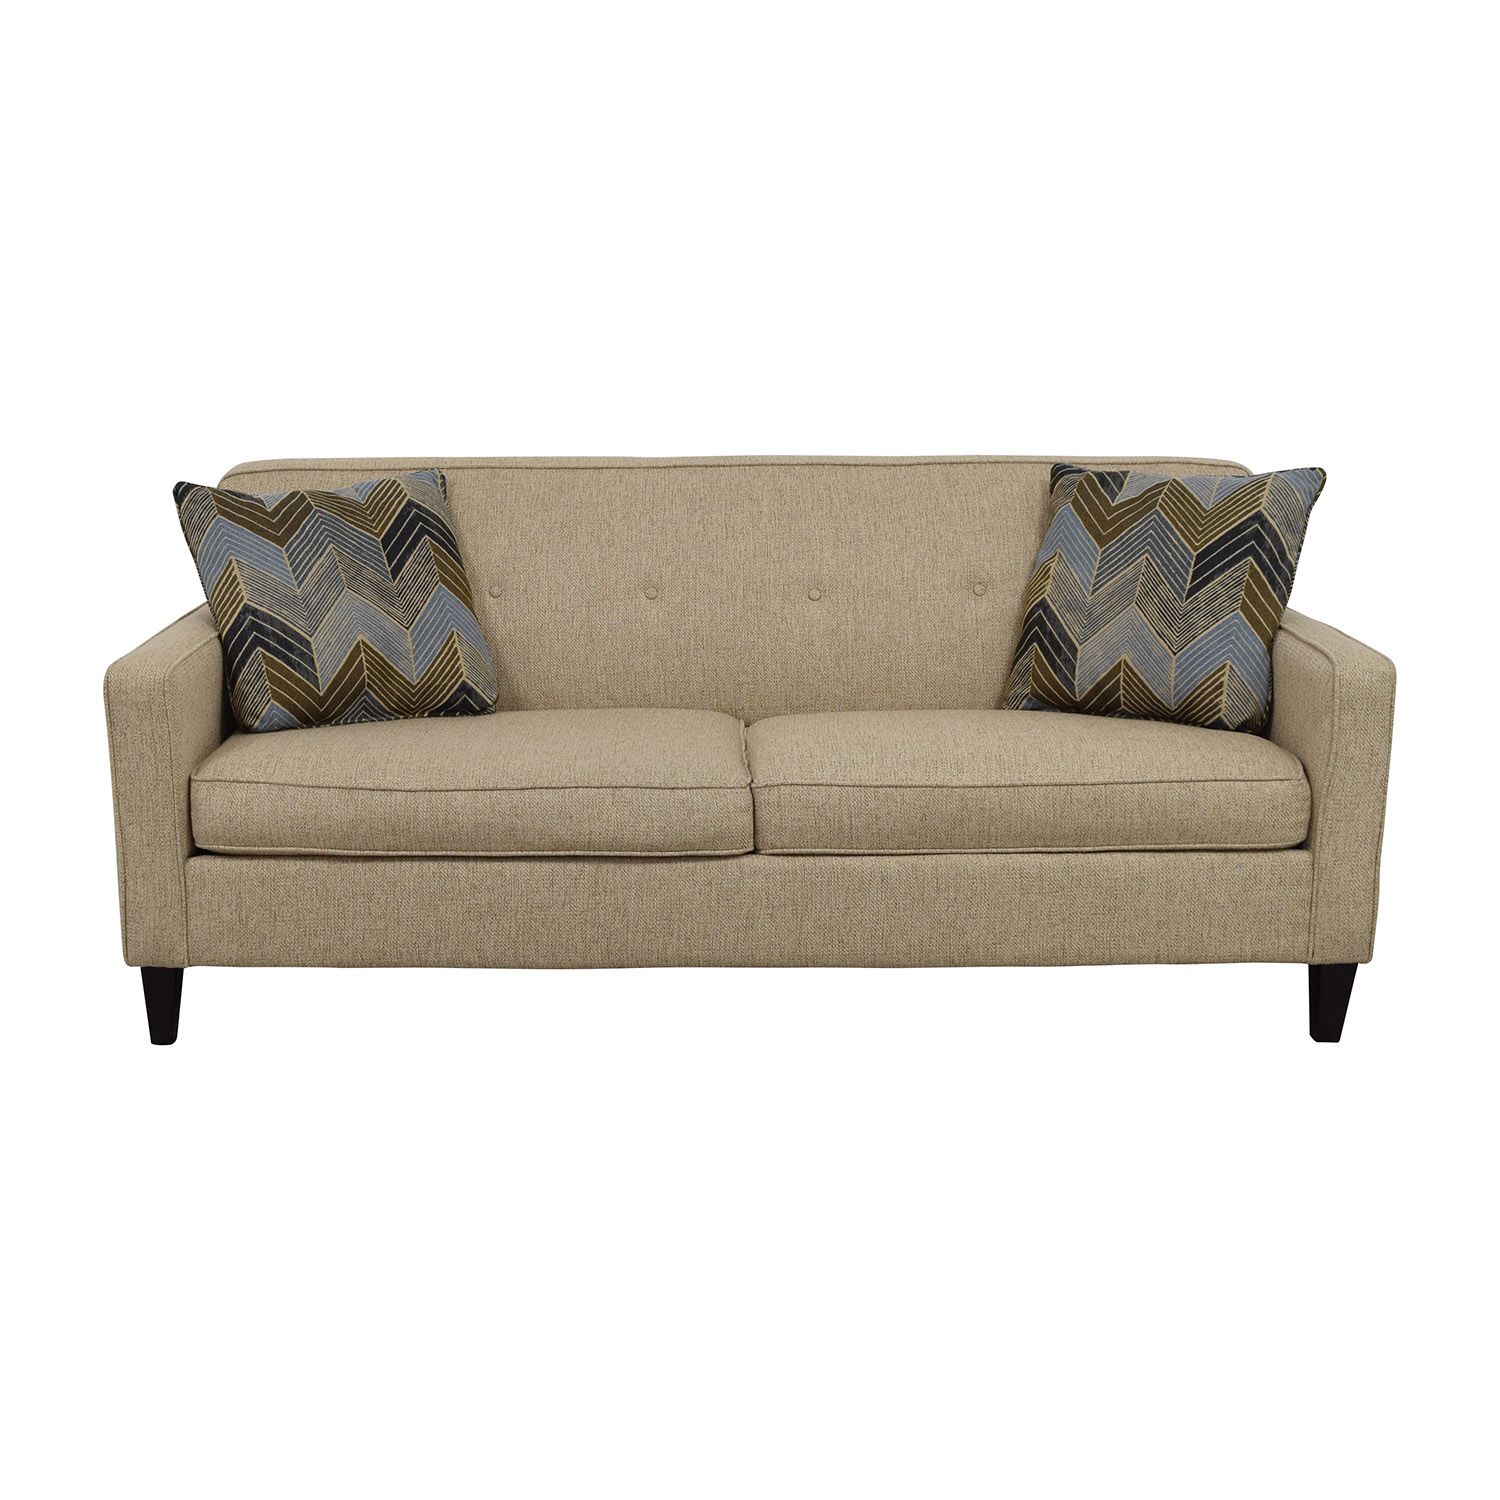 Raymour & Flanigan Raymour & Flanigan Tan Maddox Sofa on sale